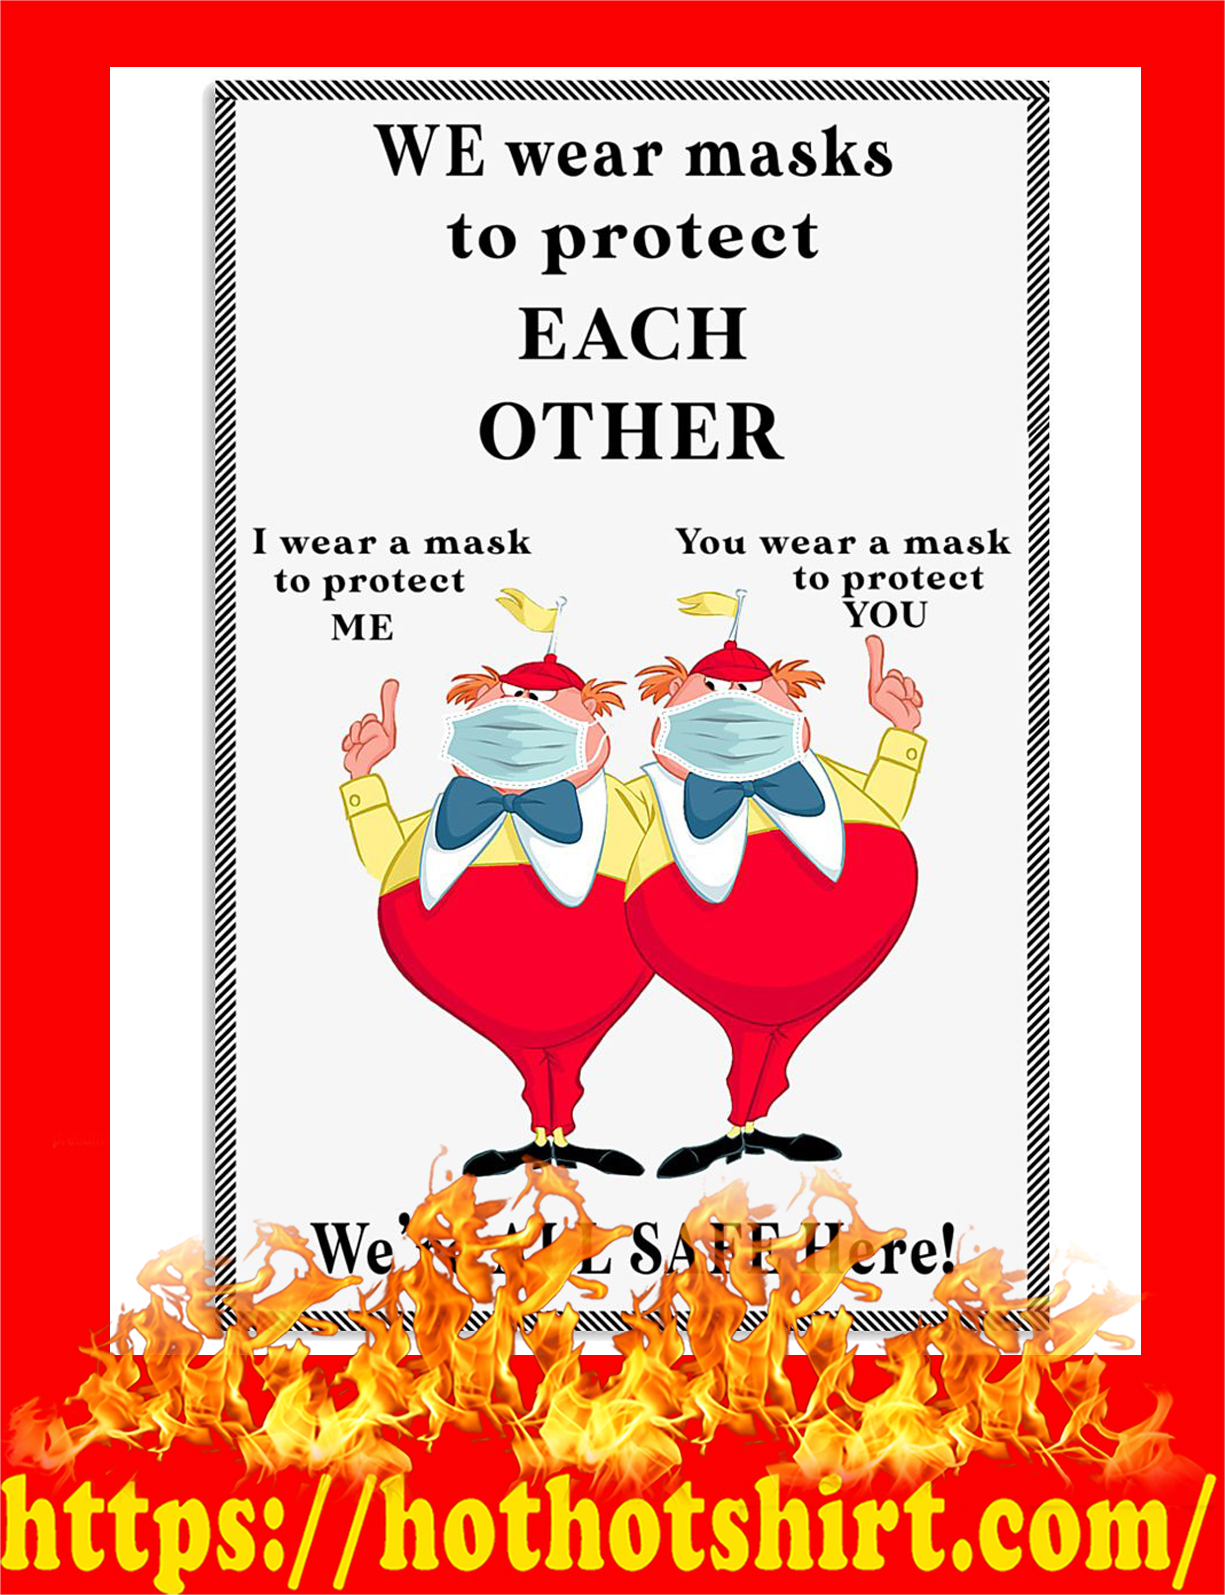 We wear masks to protect each other poster - pic 2